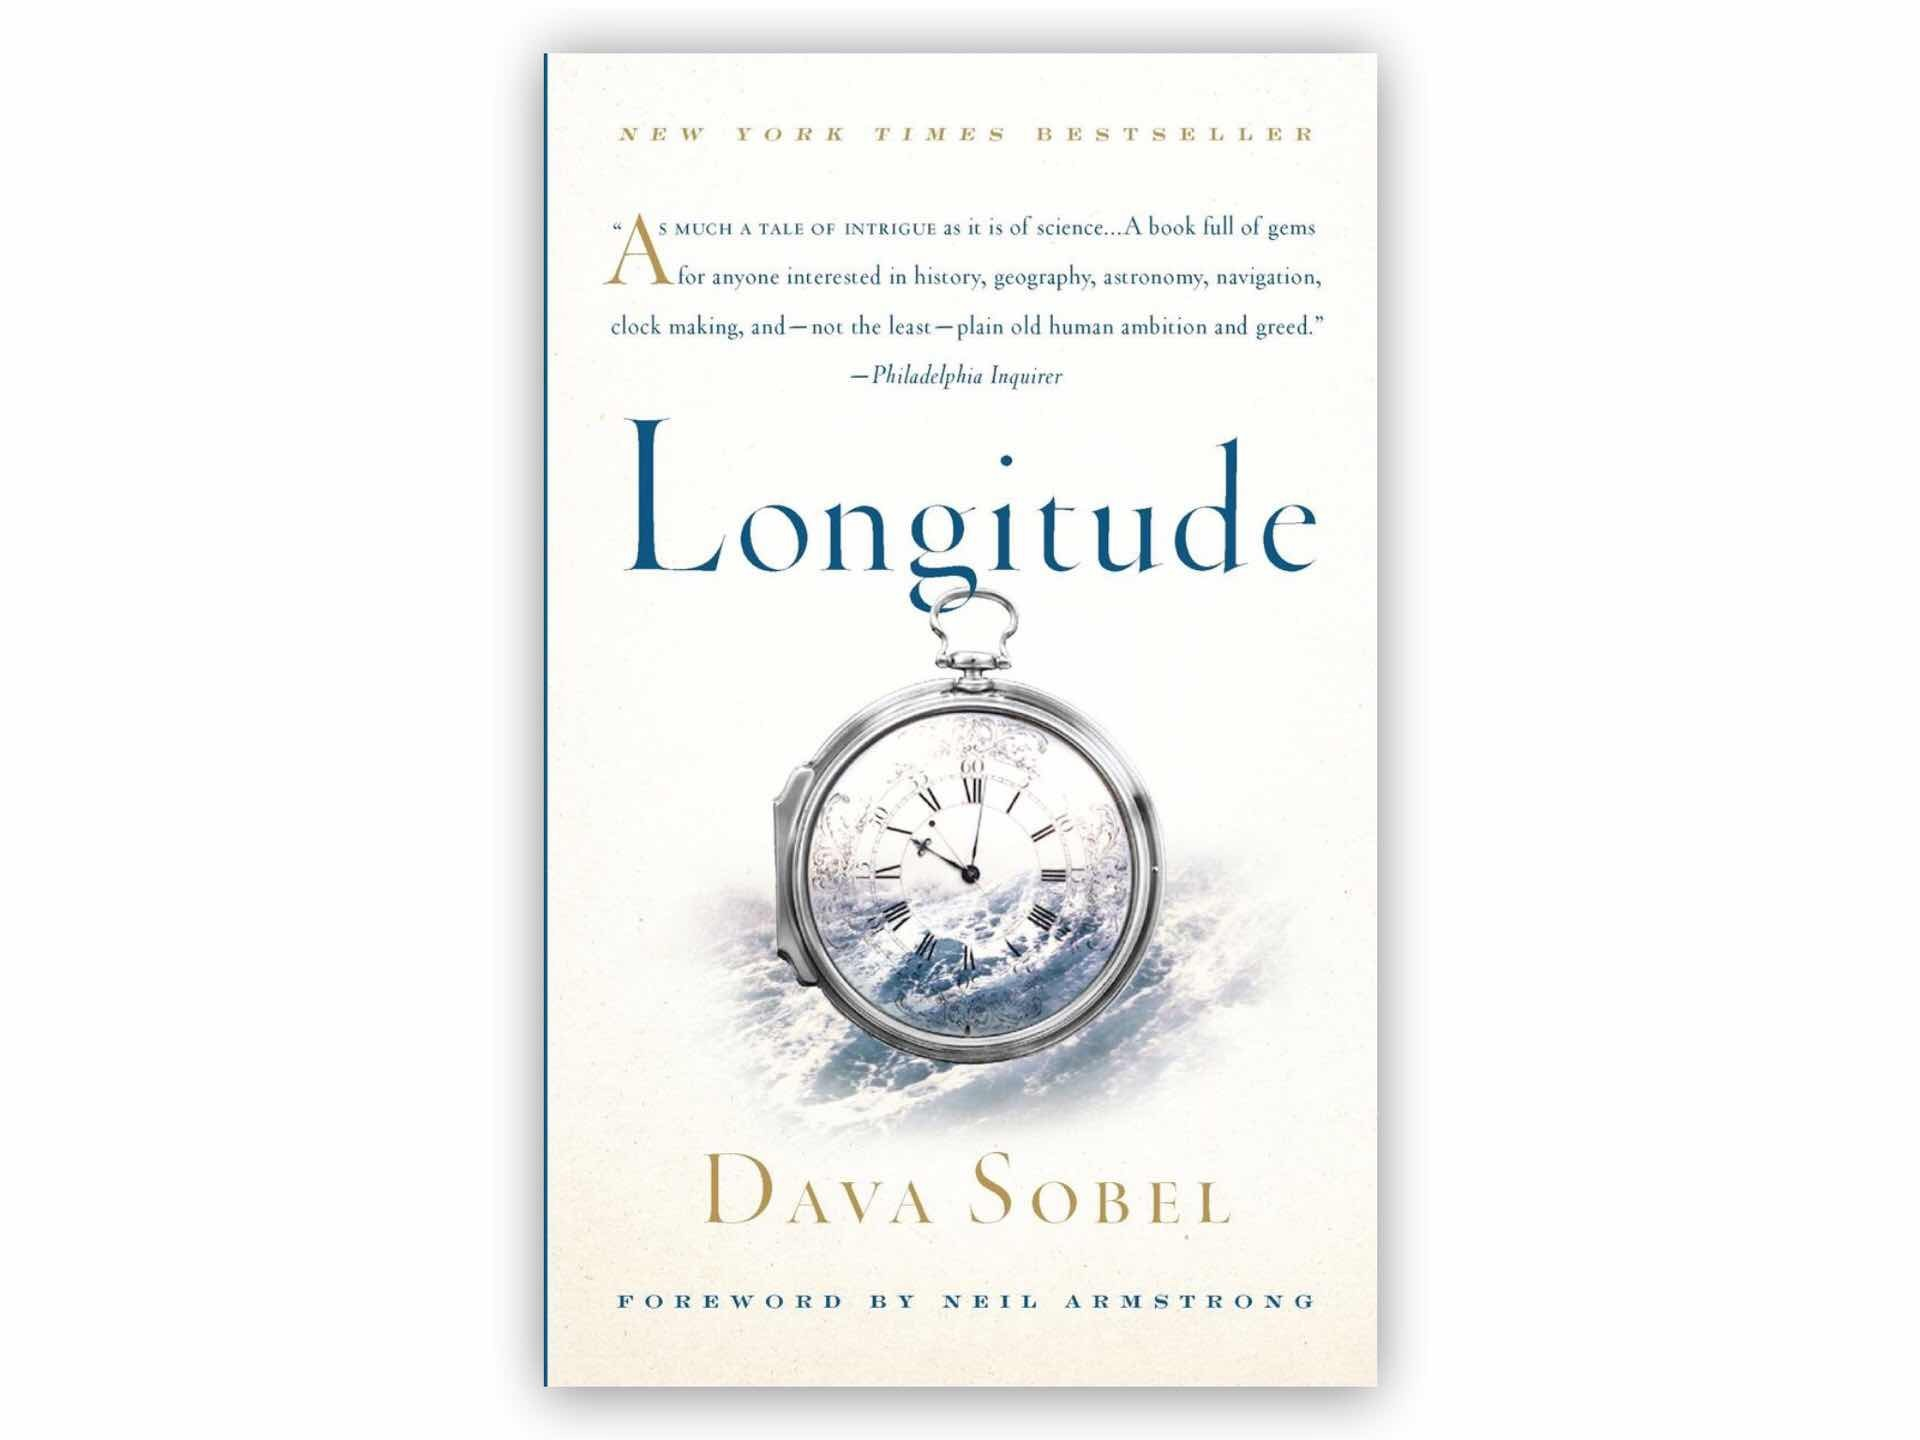 Longitude by Dava Sobel. ($17 hardcover, $13 paperback, and $71 illustrated edition)